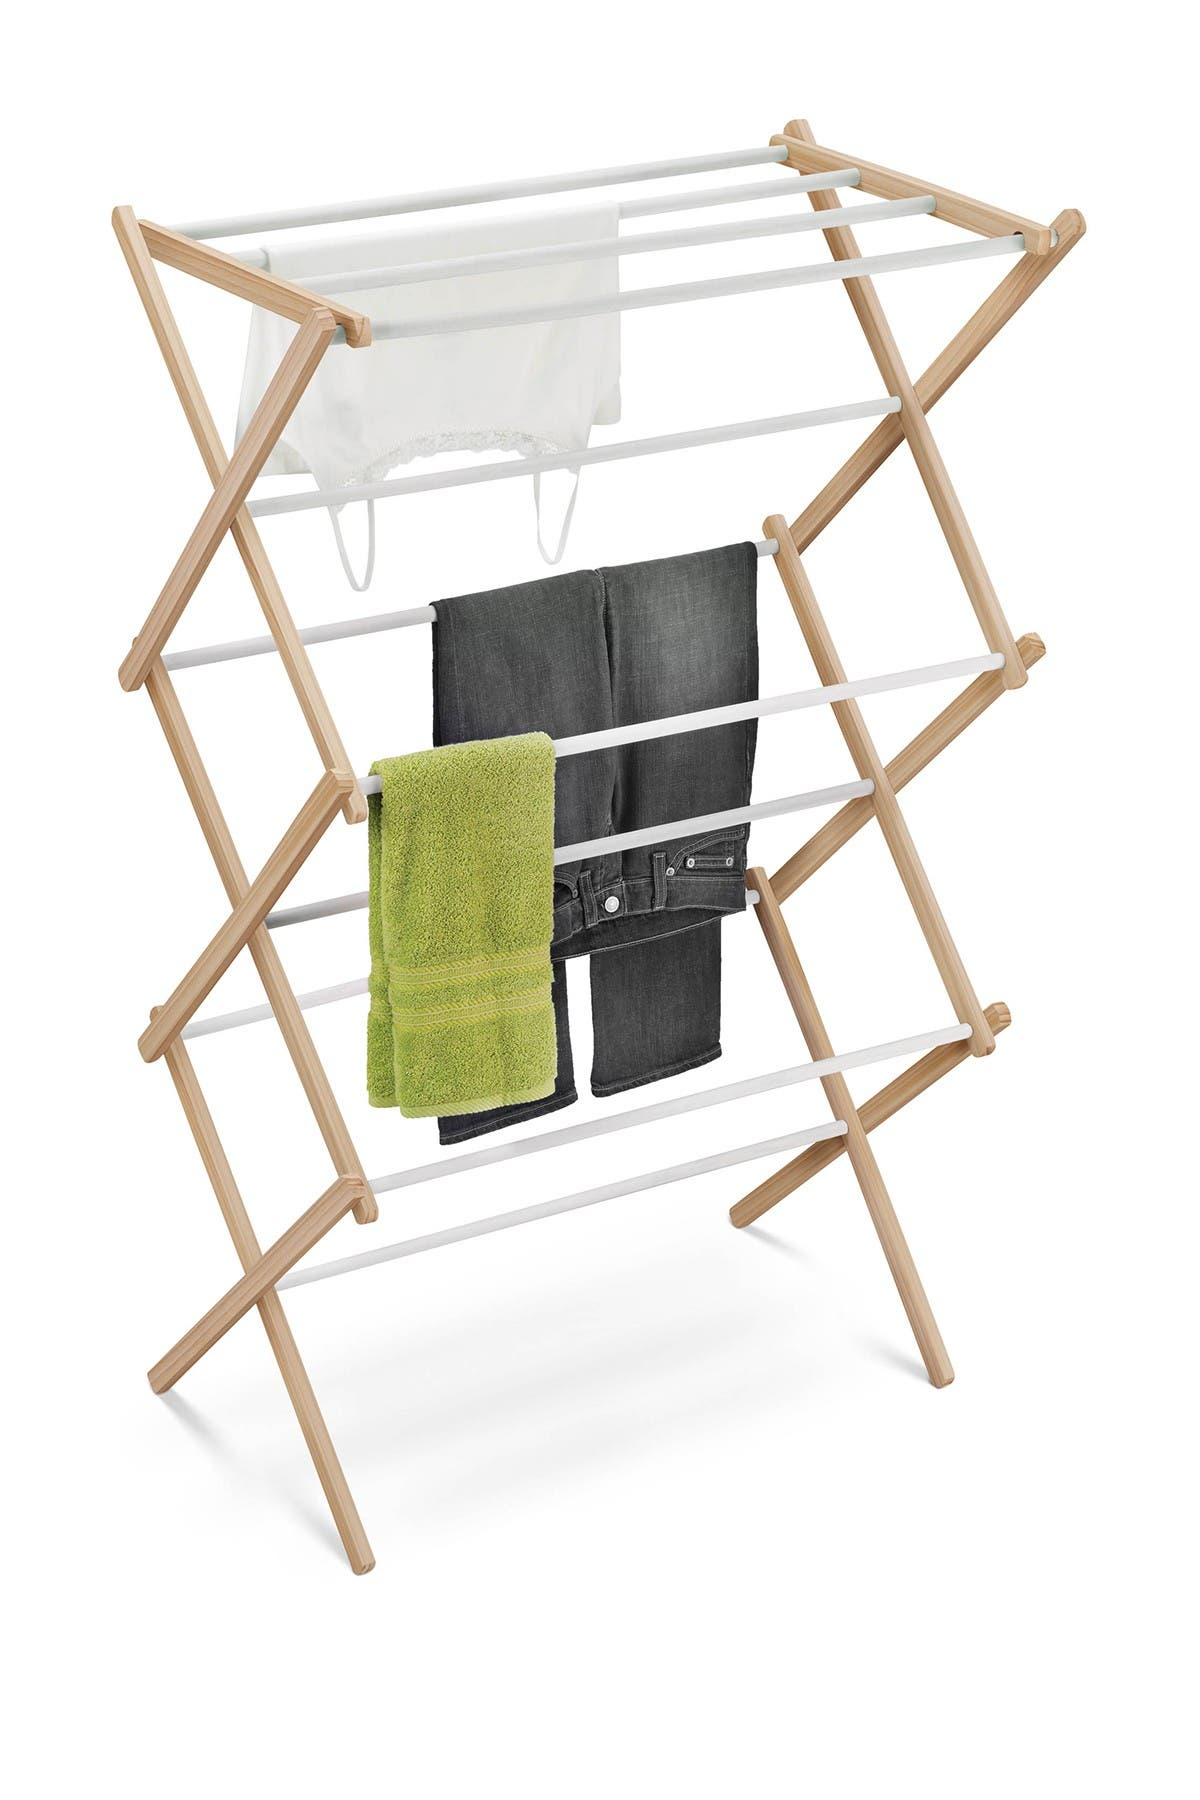 Image of Honey-Can-Do Wood Accordion Drying Rack